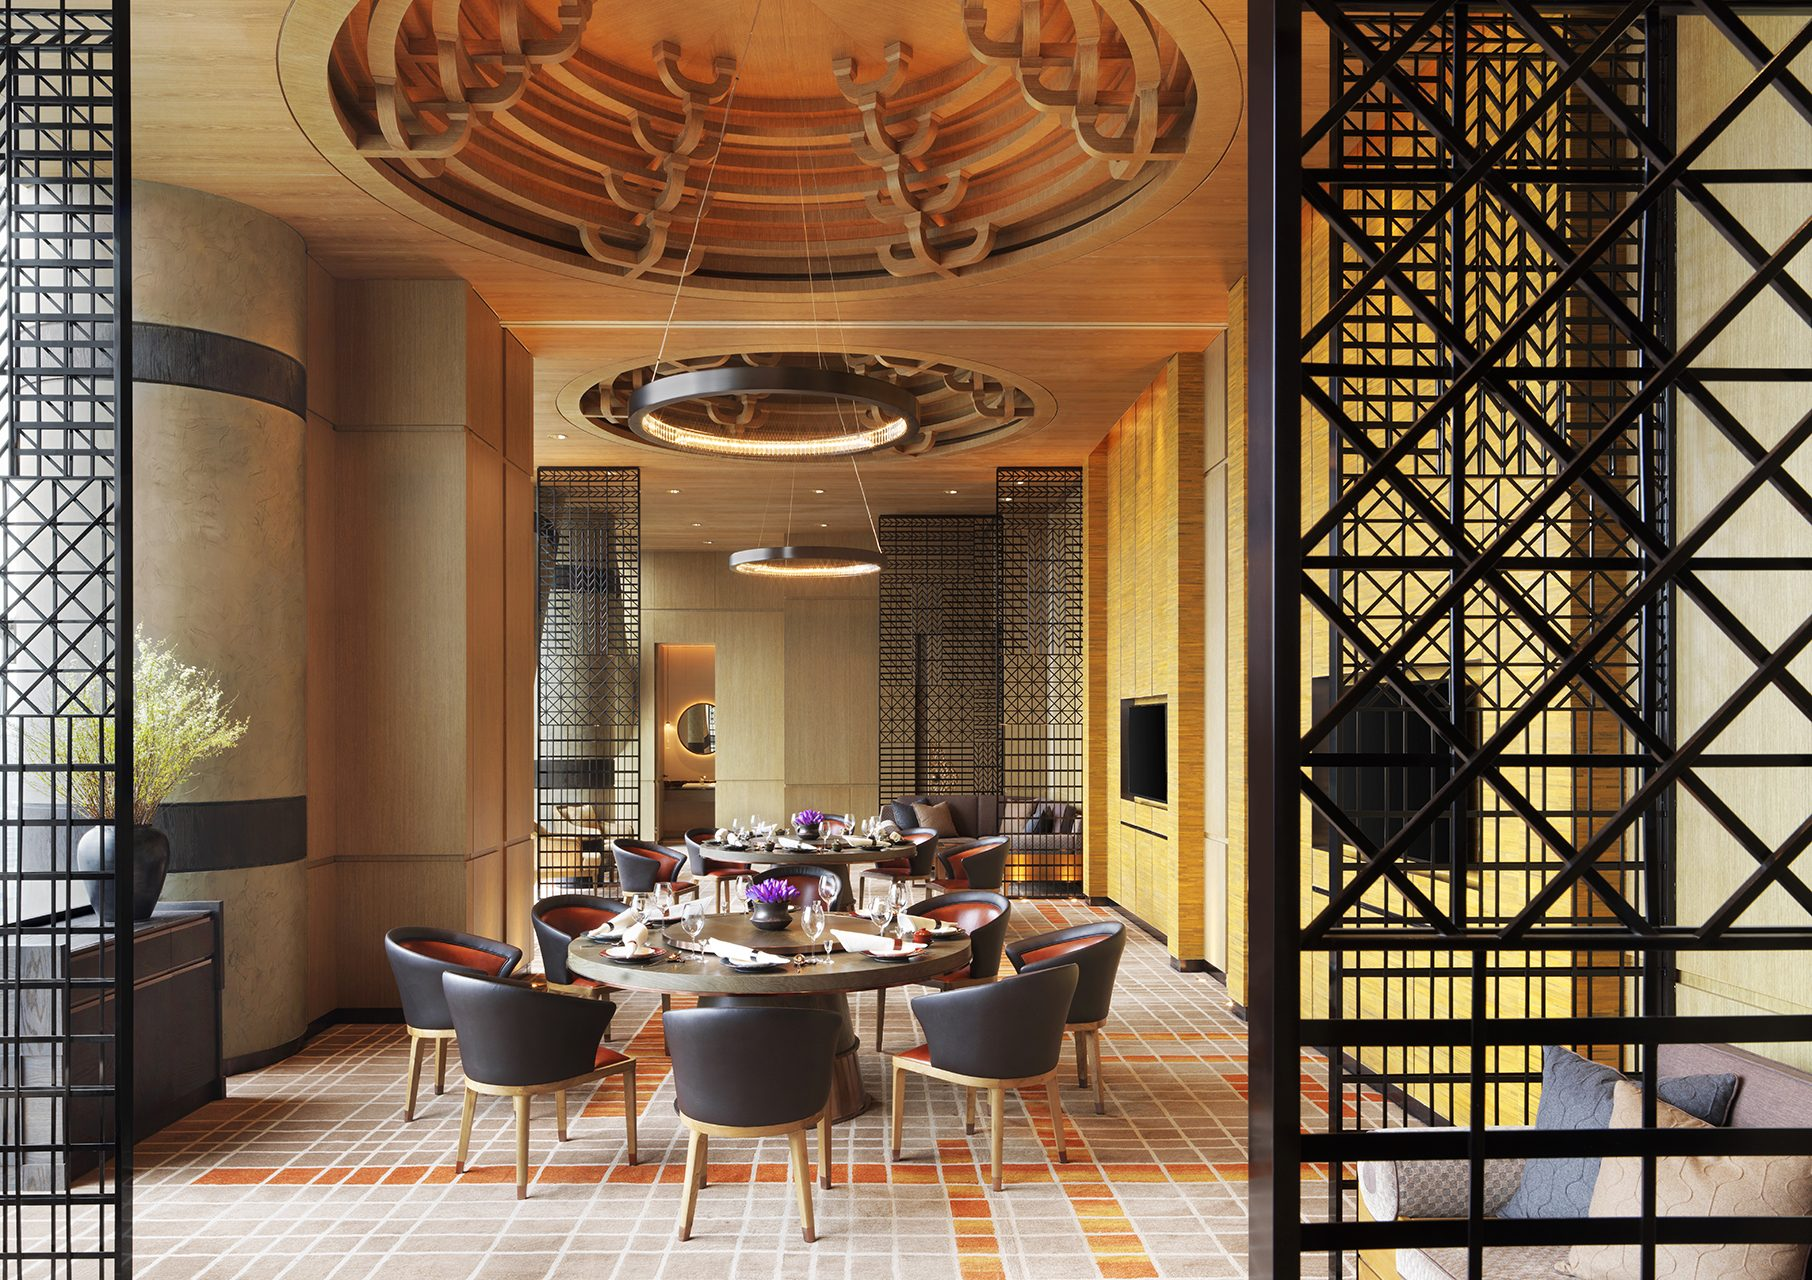 Grand Hyatt Xi'an